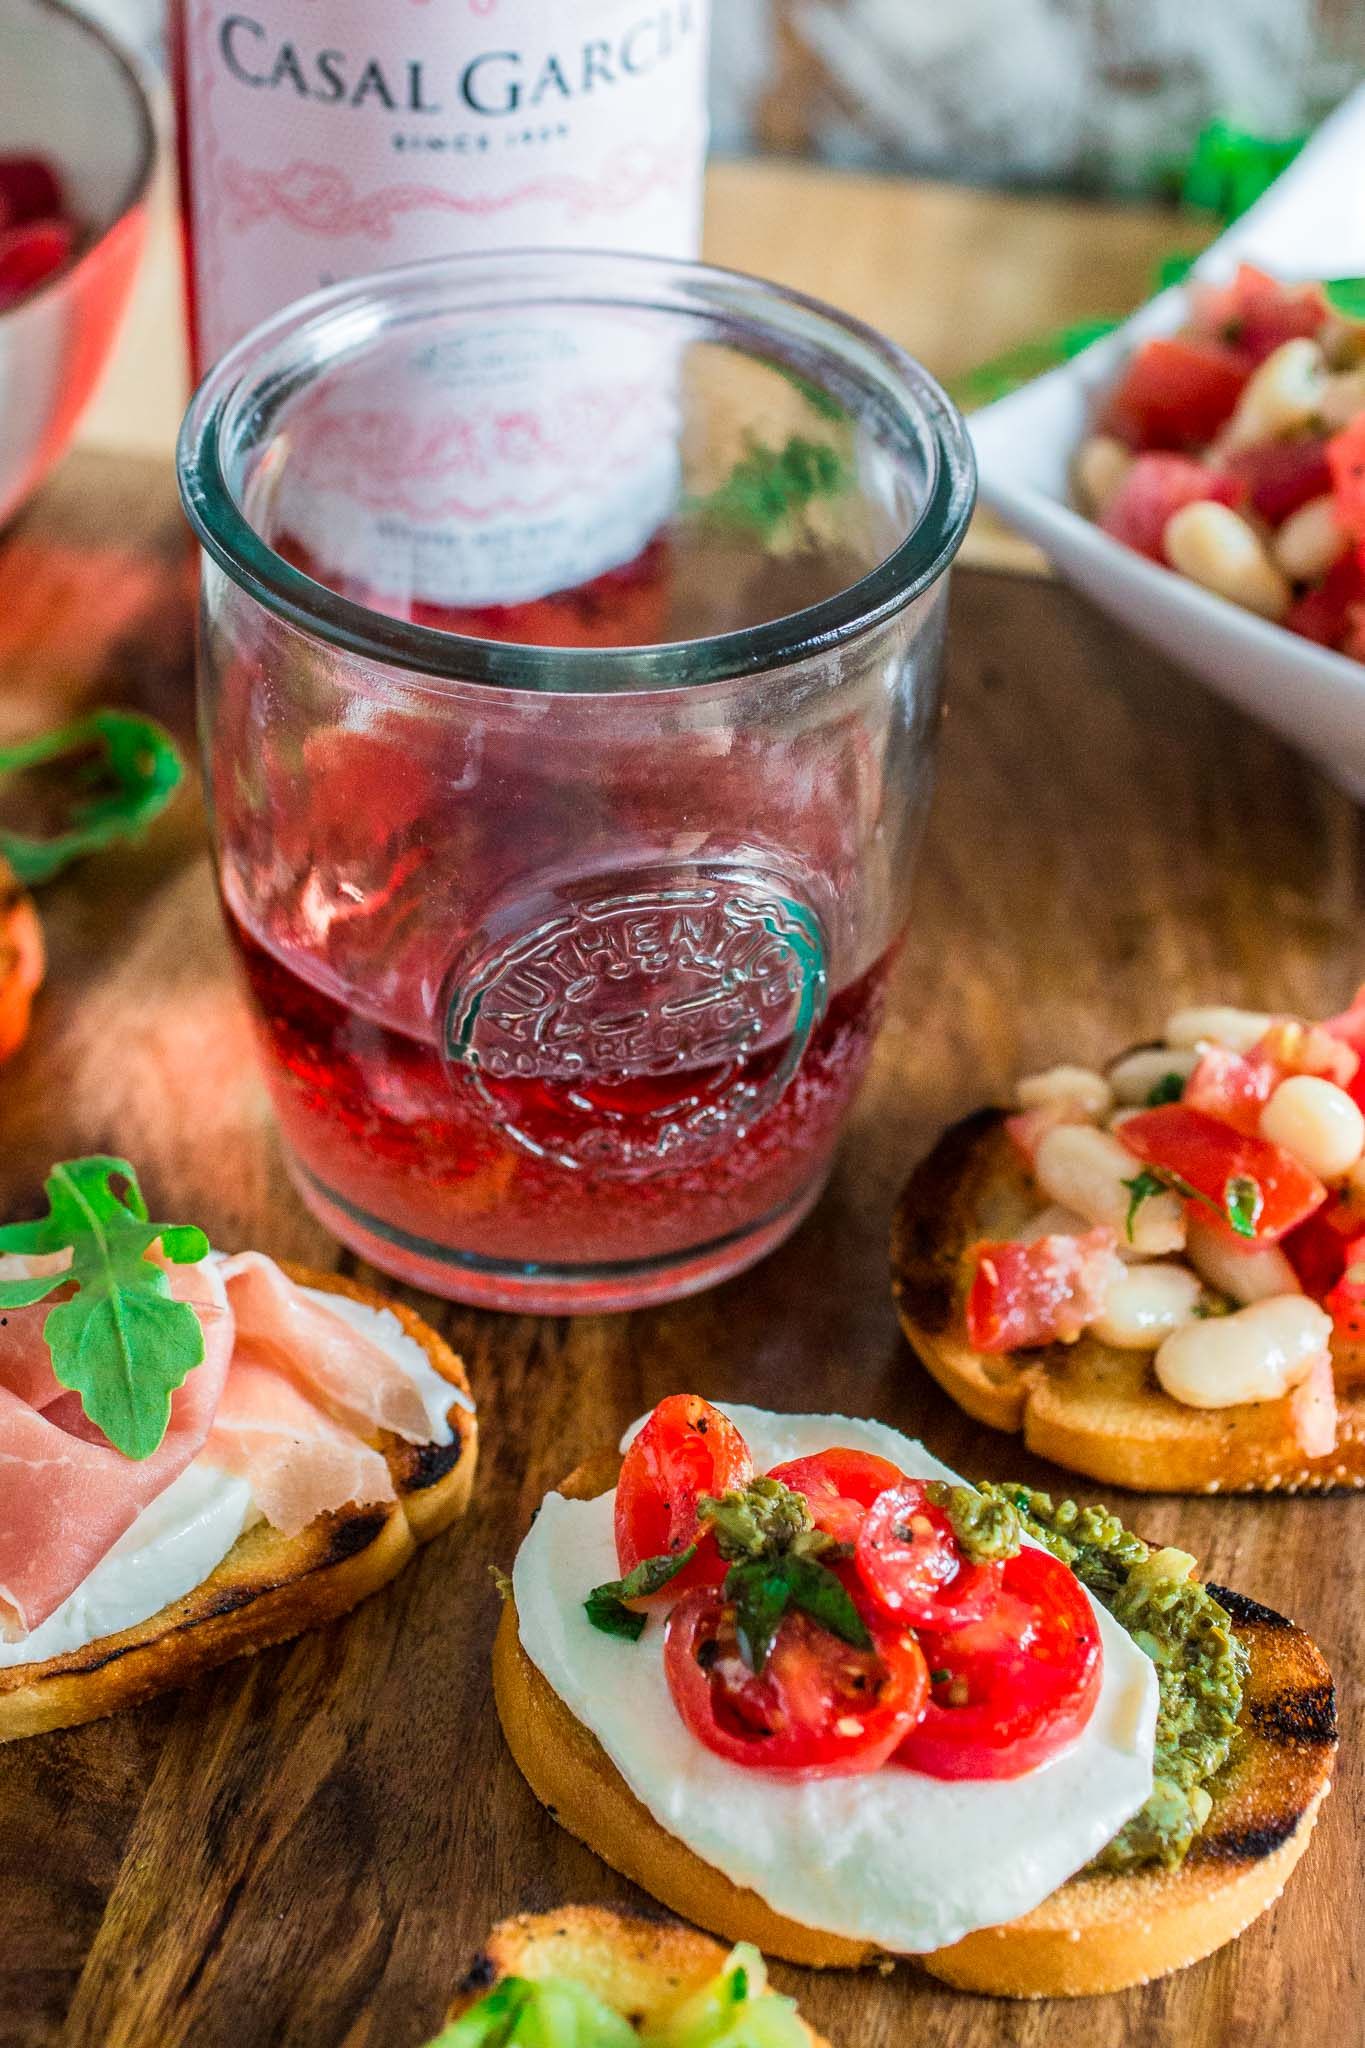 Build Your Own Bruschetta Bar   www.oliviascuisine.com   A step by step tutorial so you can set up a beautiful and fun bruschetta station for your next party!